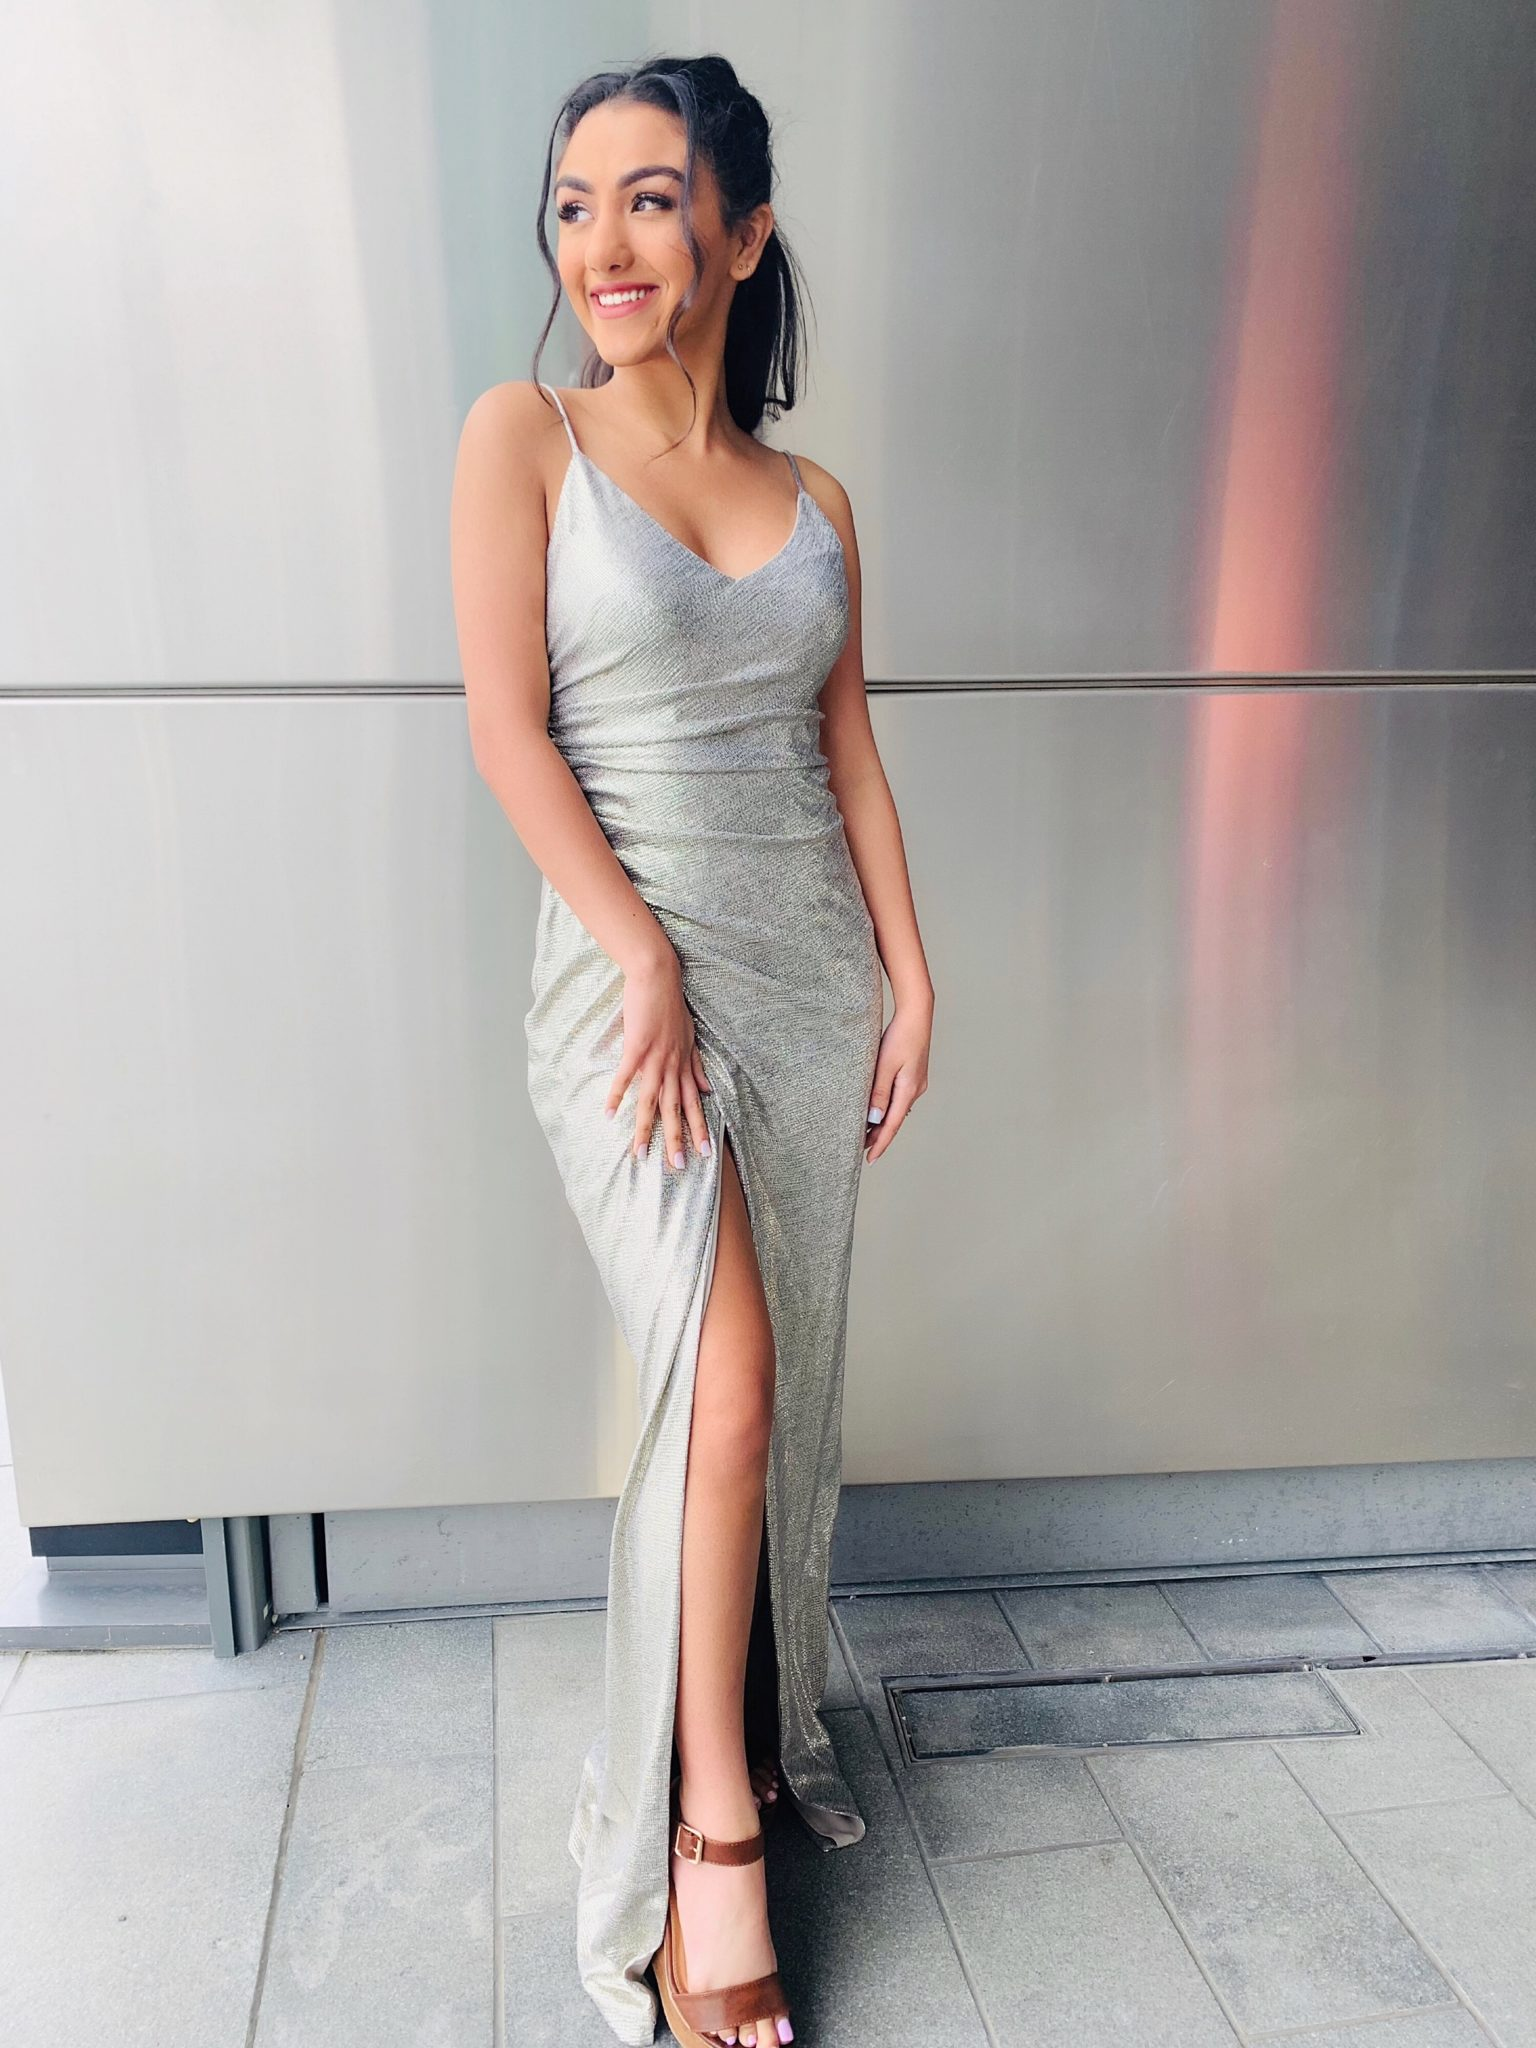 Girl smiling in metallic sheath dress for a college formal